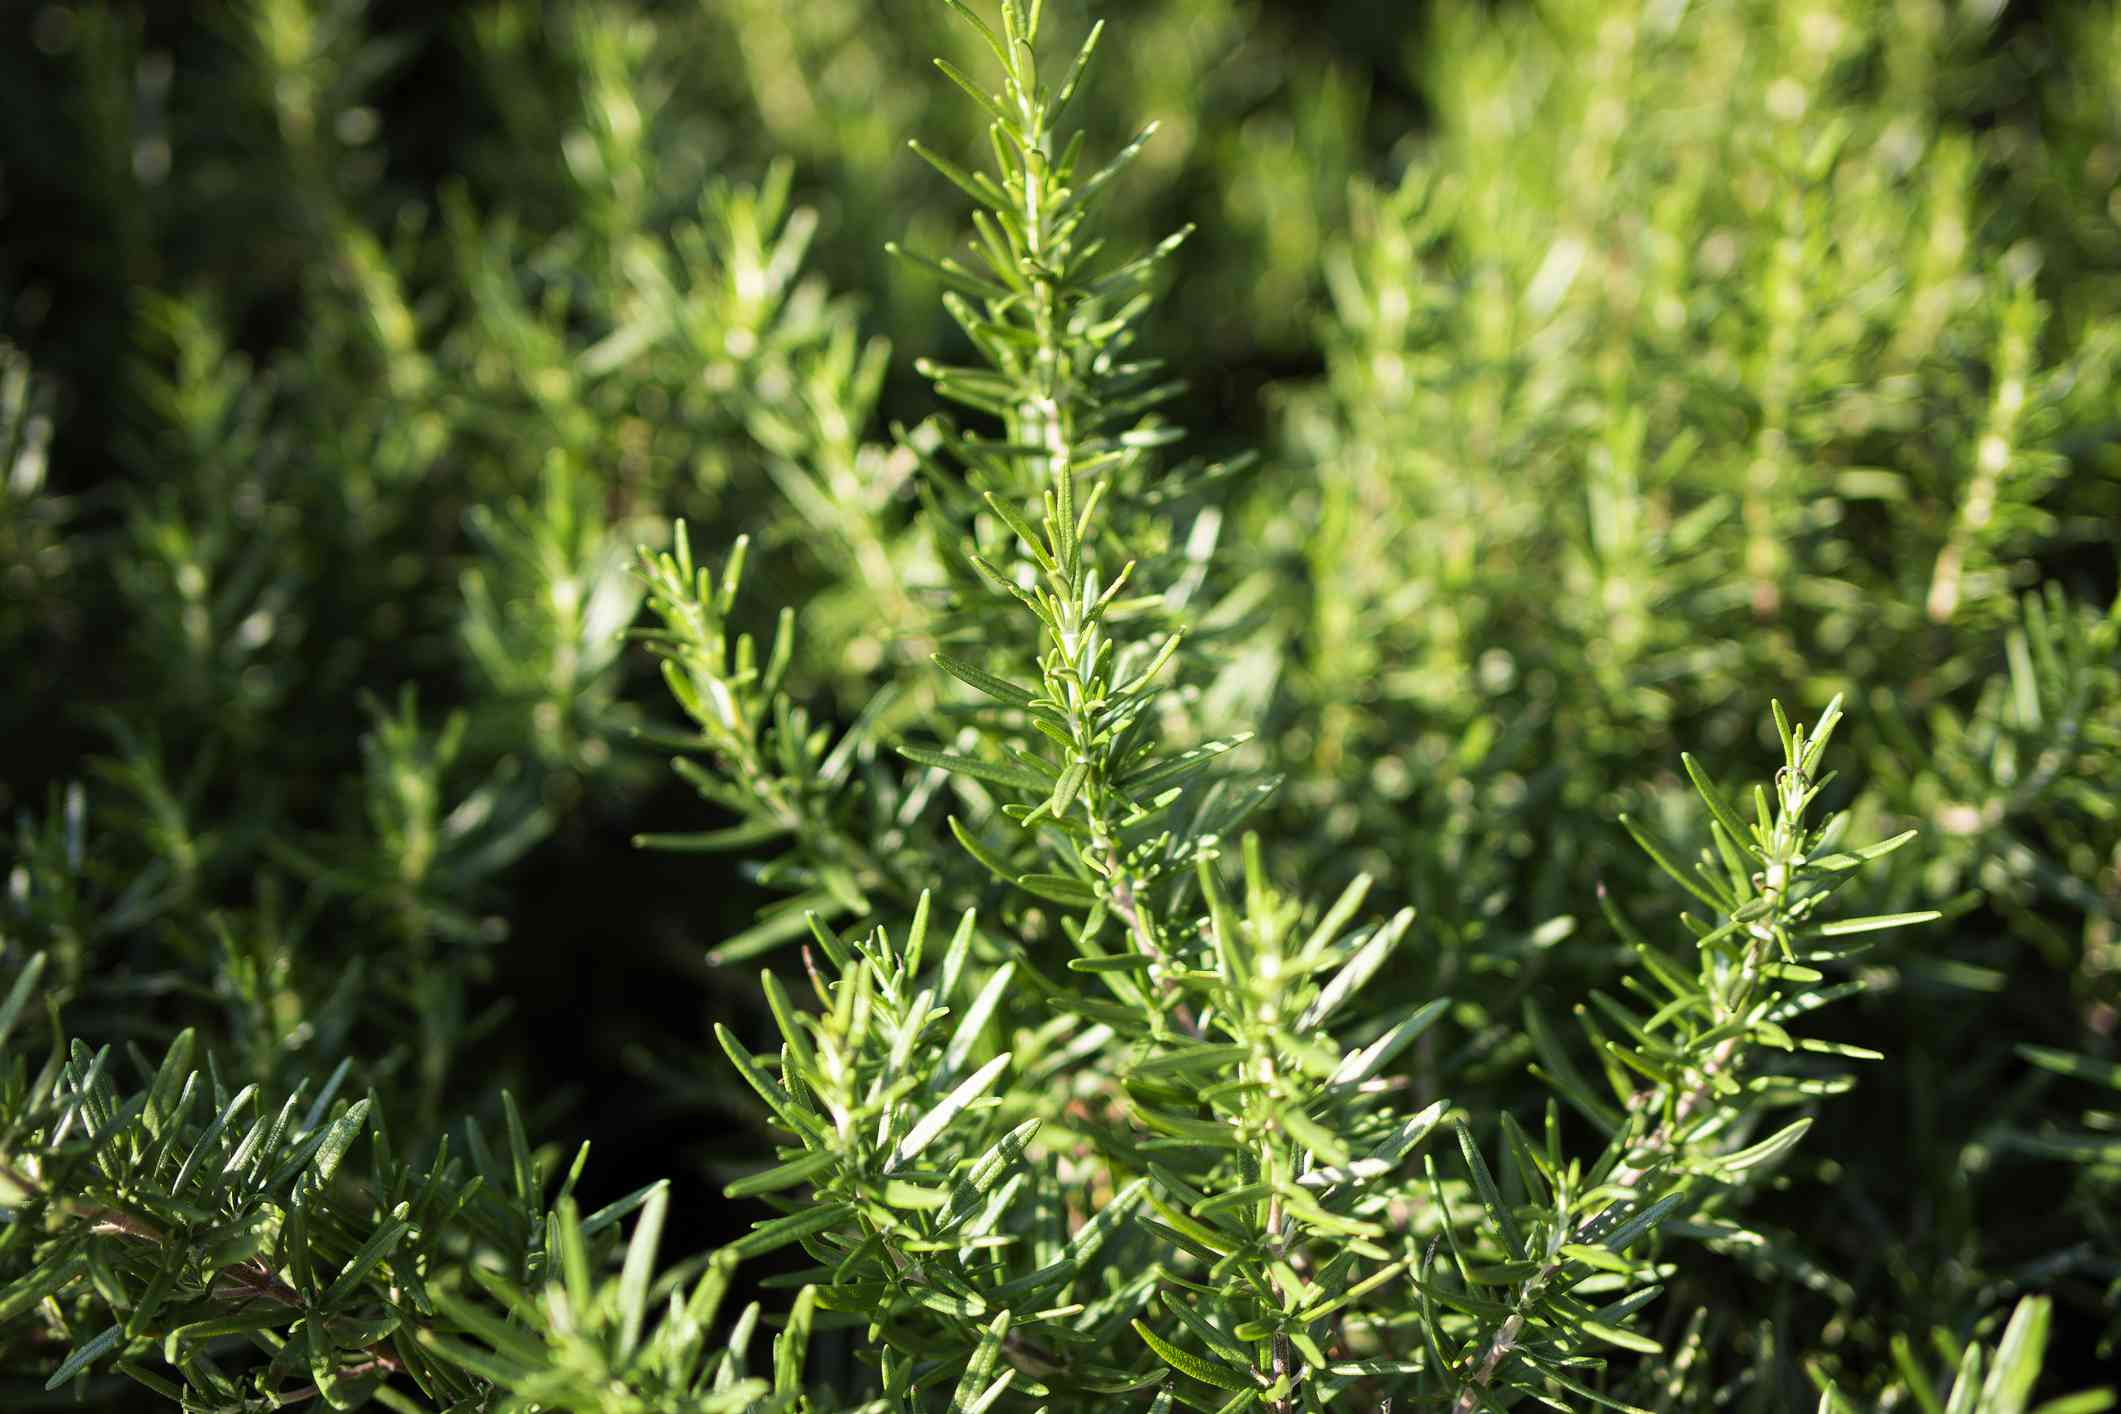 Rosemary plants covering the ground